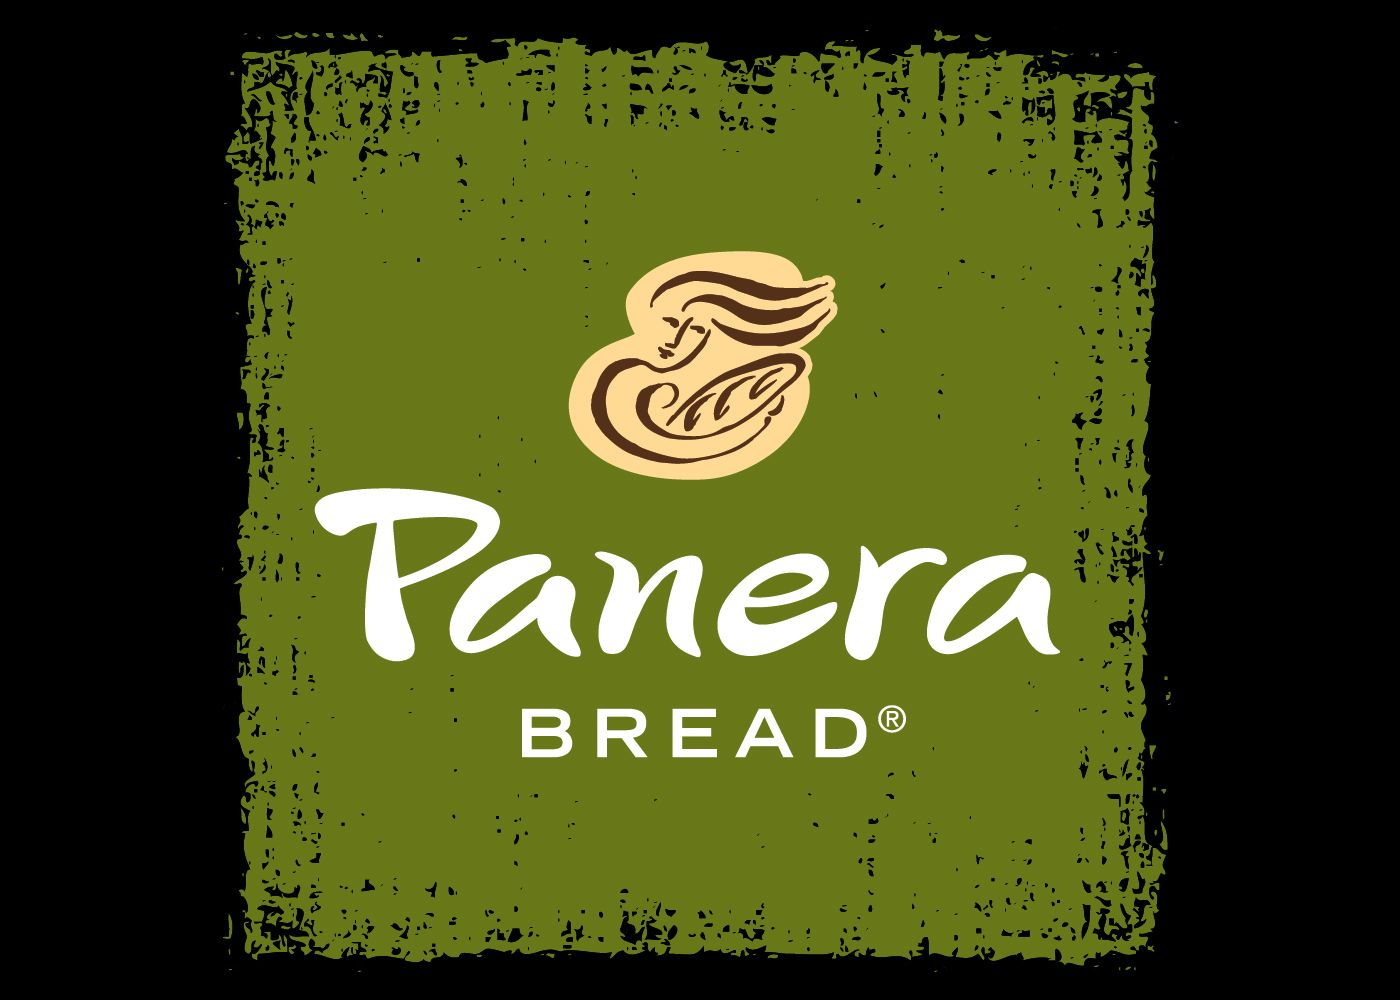 Panera symbol all logos world pinterest logos and history panera logo panera symbol meaning history and evolution buycottarizona